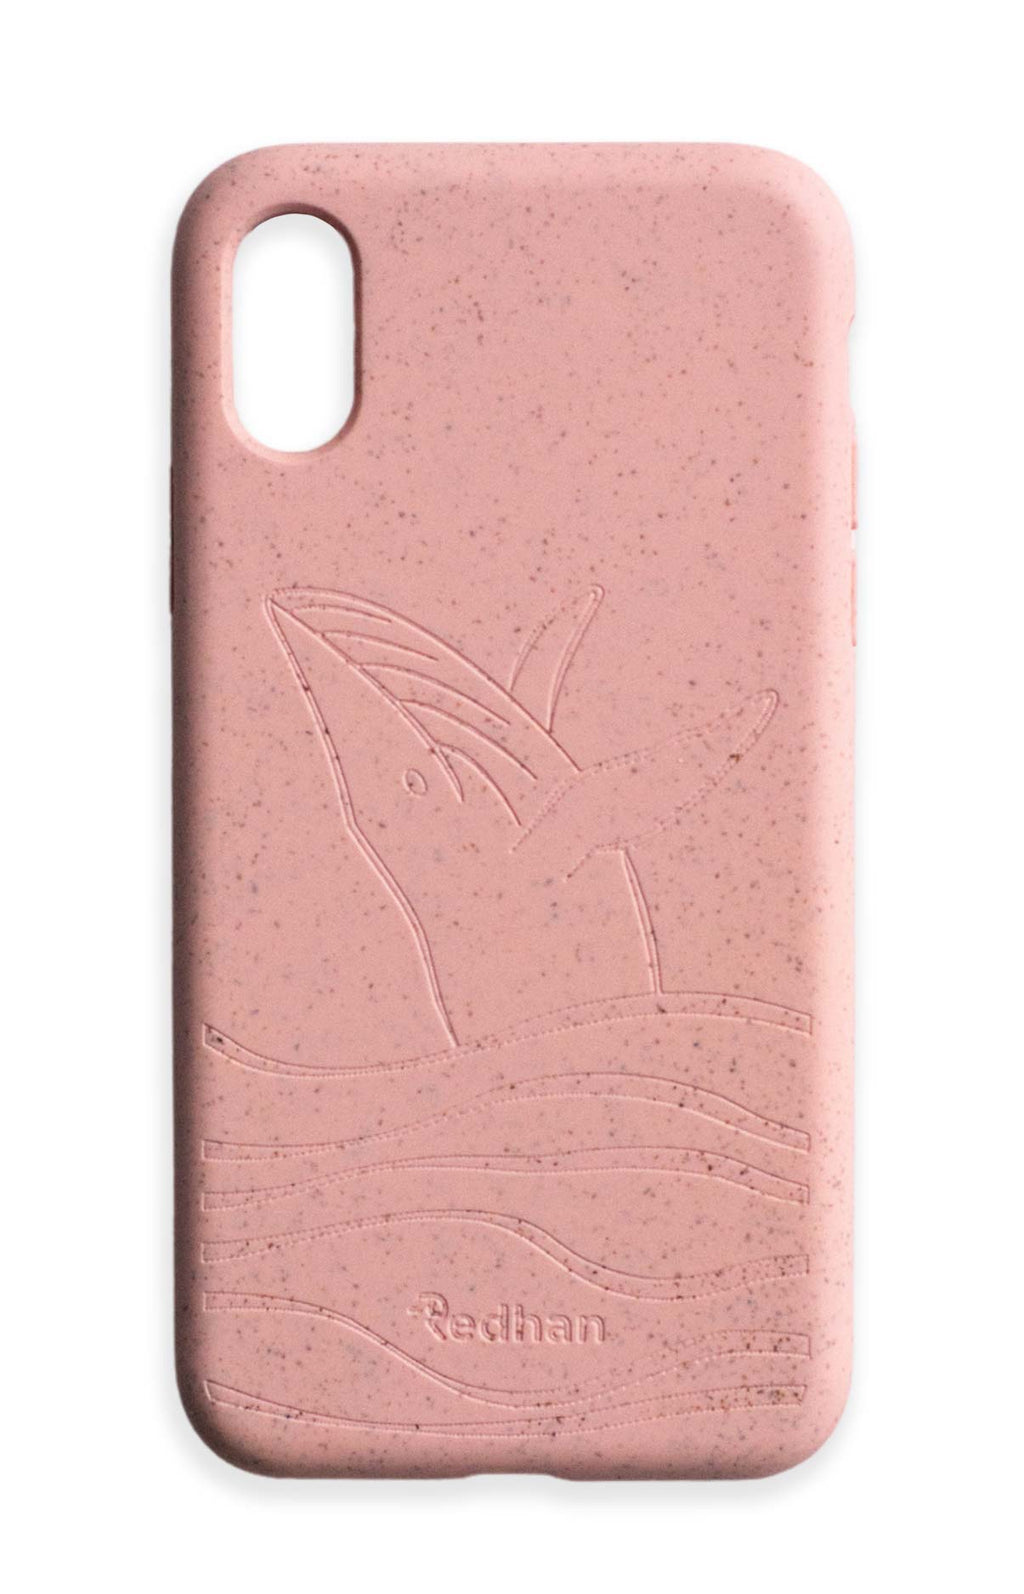 Biodegradable Eco-Frienldy Phone Case, Pink iPhone X / iPhone XS Phone Case